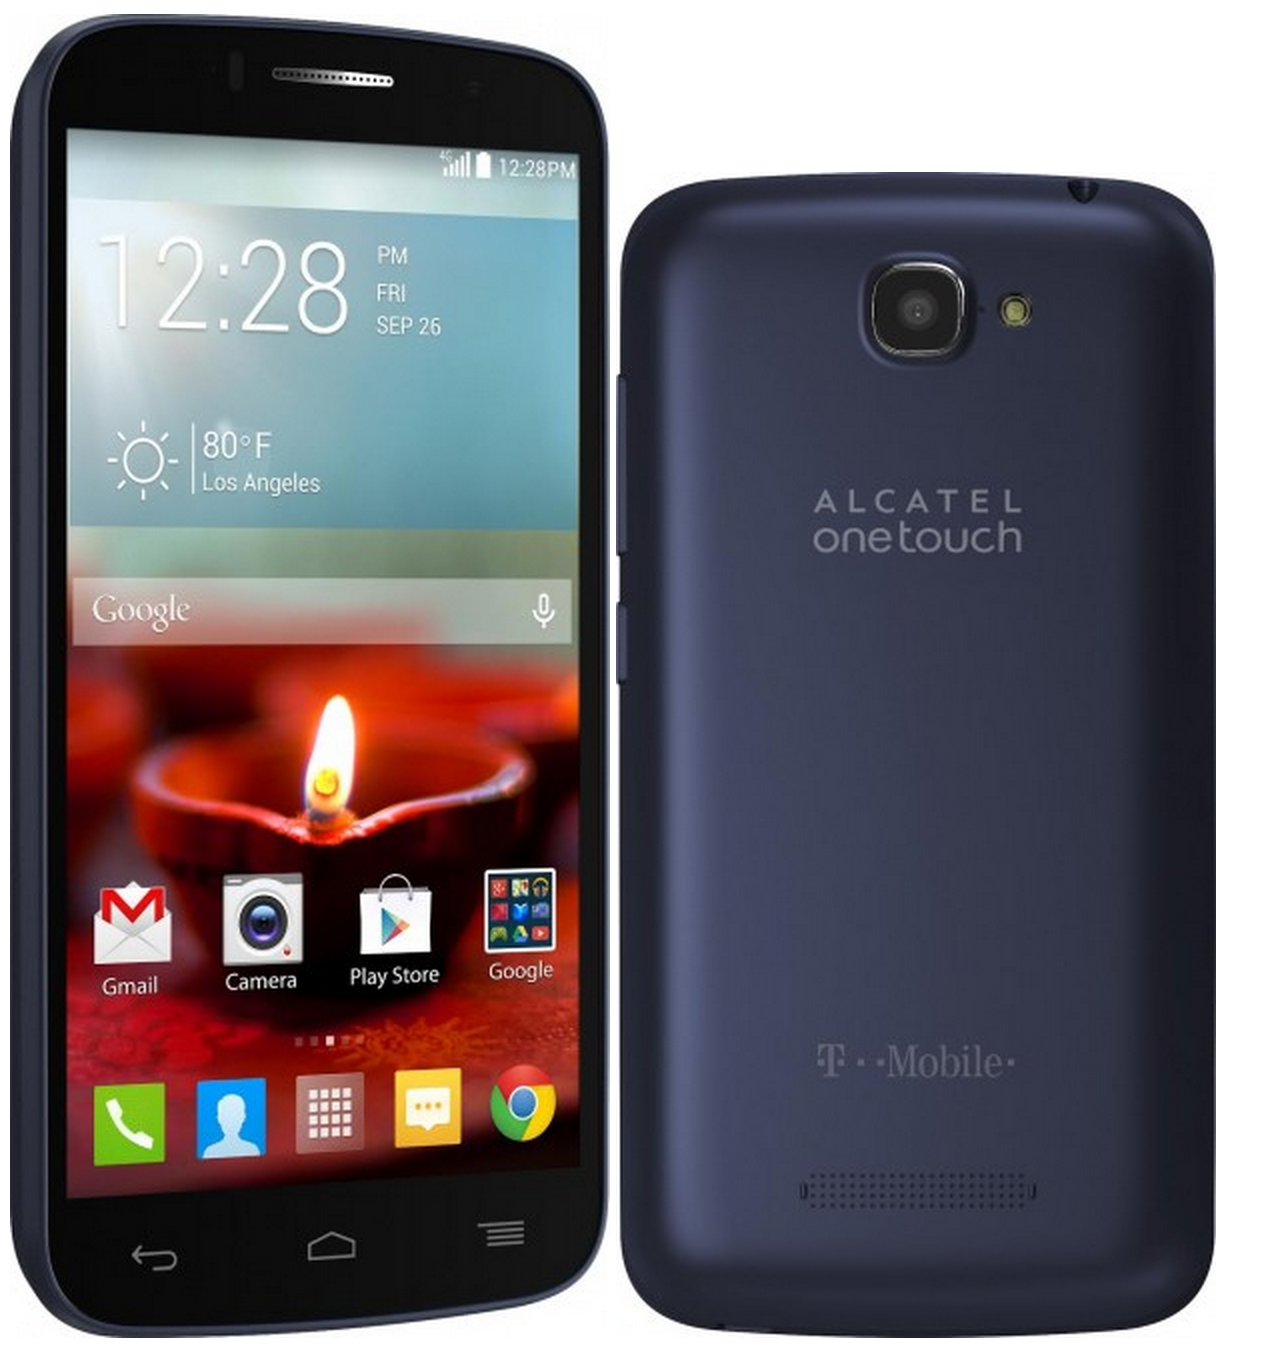 Alcatel : Used Cell Phones, Cheap Unlocked Cell Phones ...